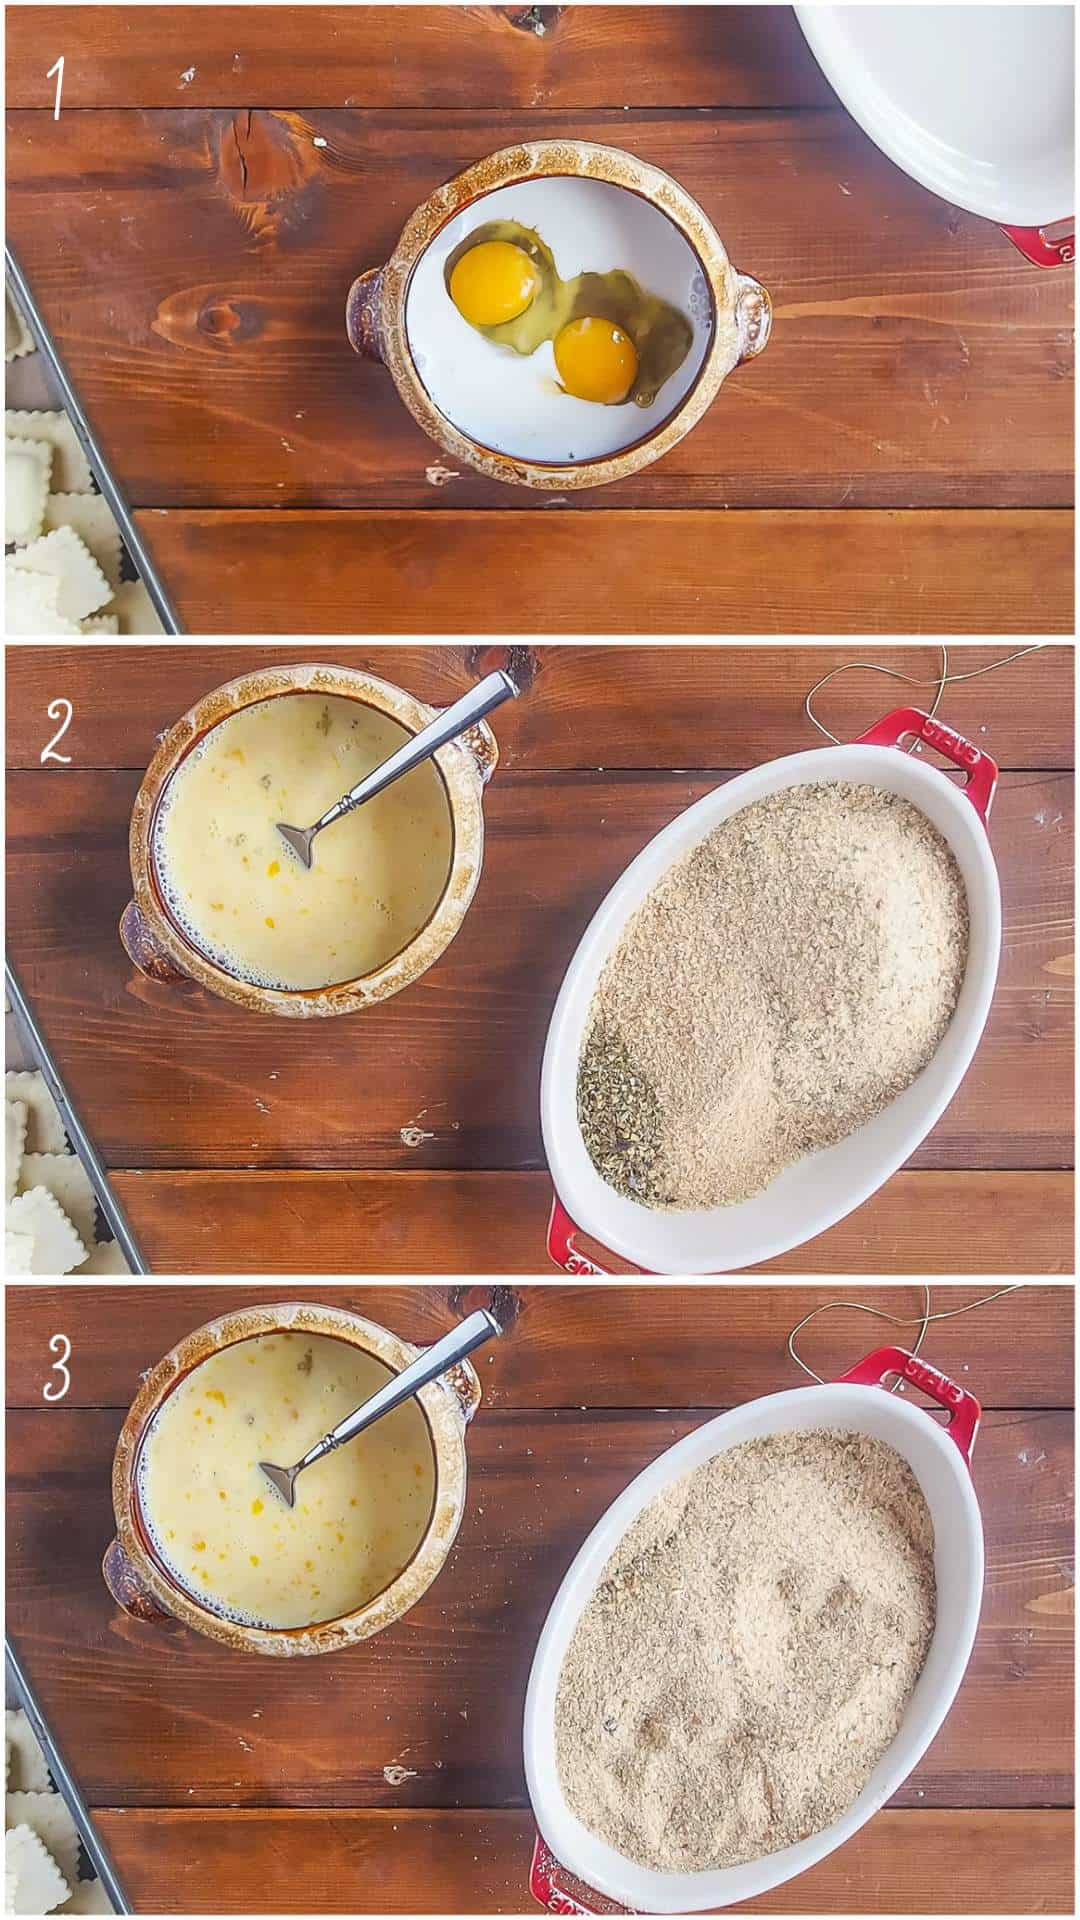 A collage of images showing how to fry ravioli, steps 1 - 3.